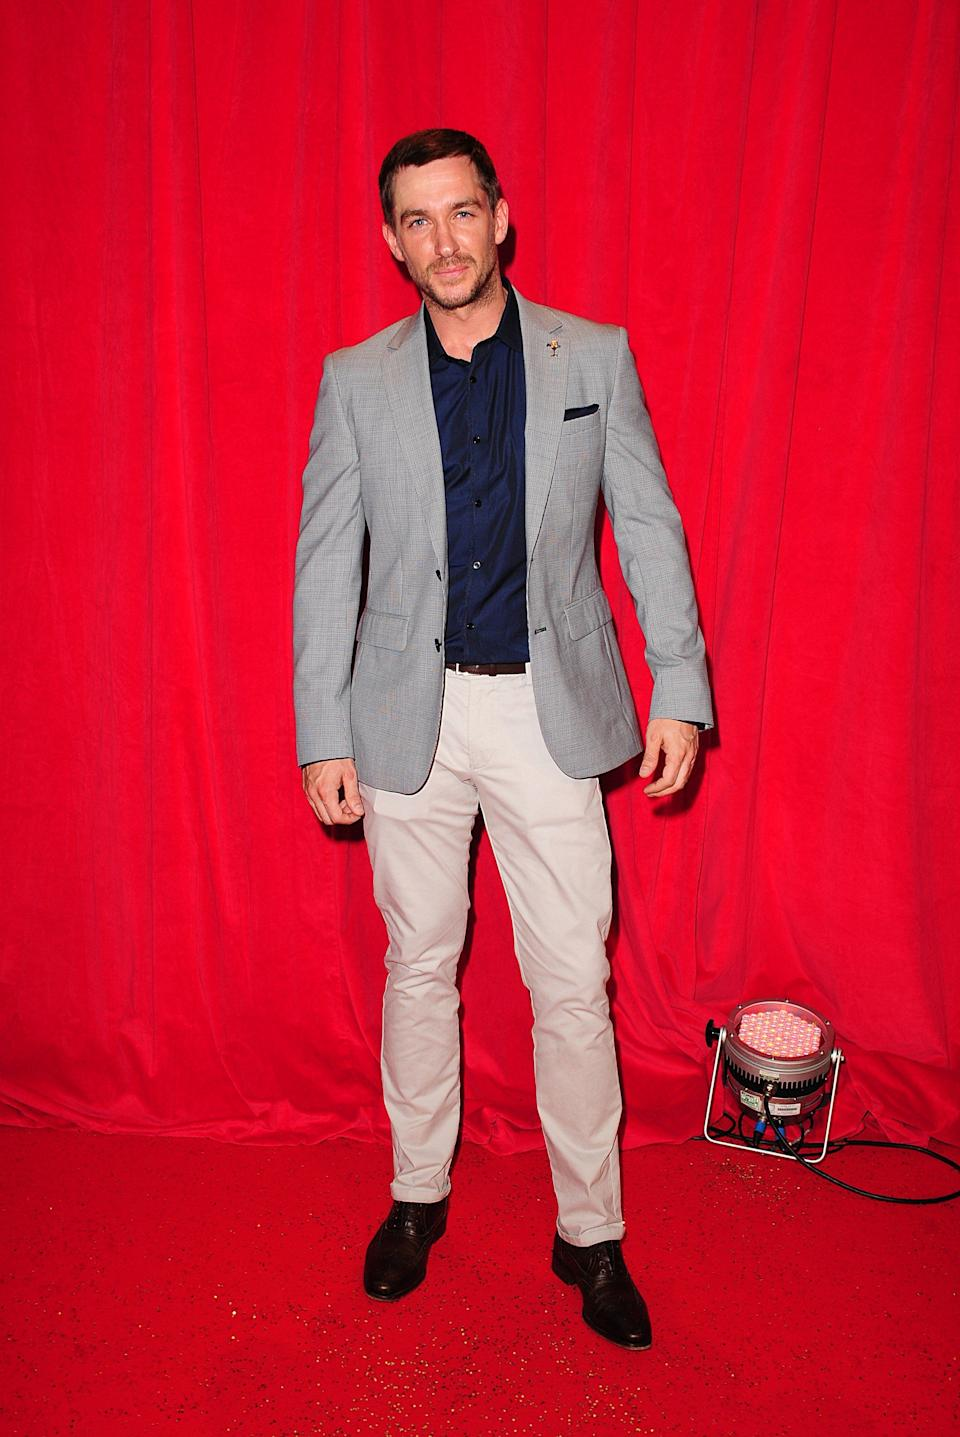 Anthony Quinlan was Hollyoaks' Gilly Roach for 6 years before leaving and, two years later, joining 'Emmerdale'.